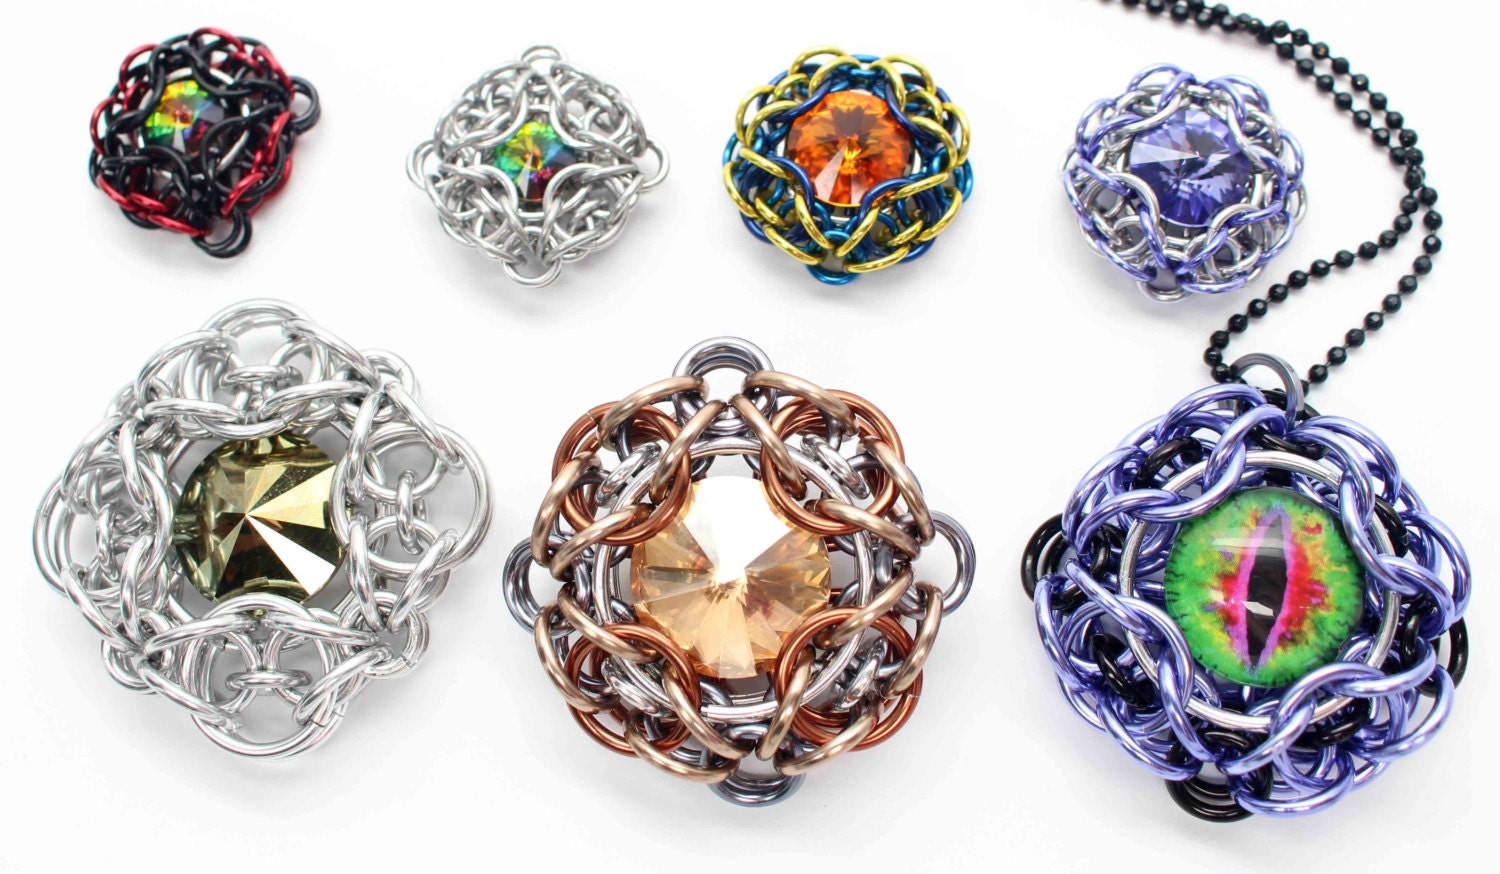 Forward unto dawn pendant tutorial chainmaille rivoli or forward unto dawn pendant tutorial chainmaille rivoli or cabochon setting 4 sizes digital download mozeypictures Image collections